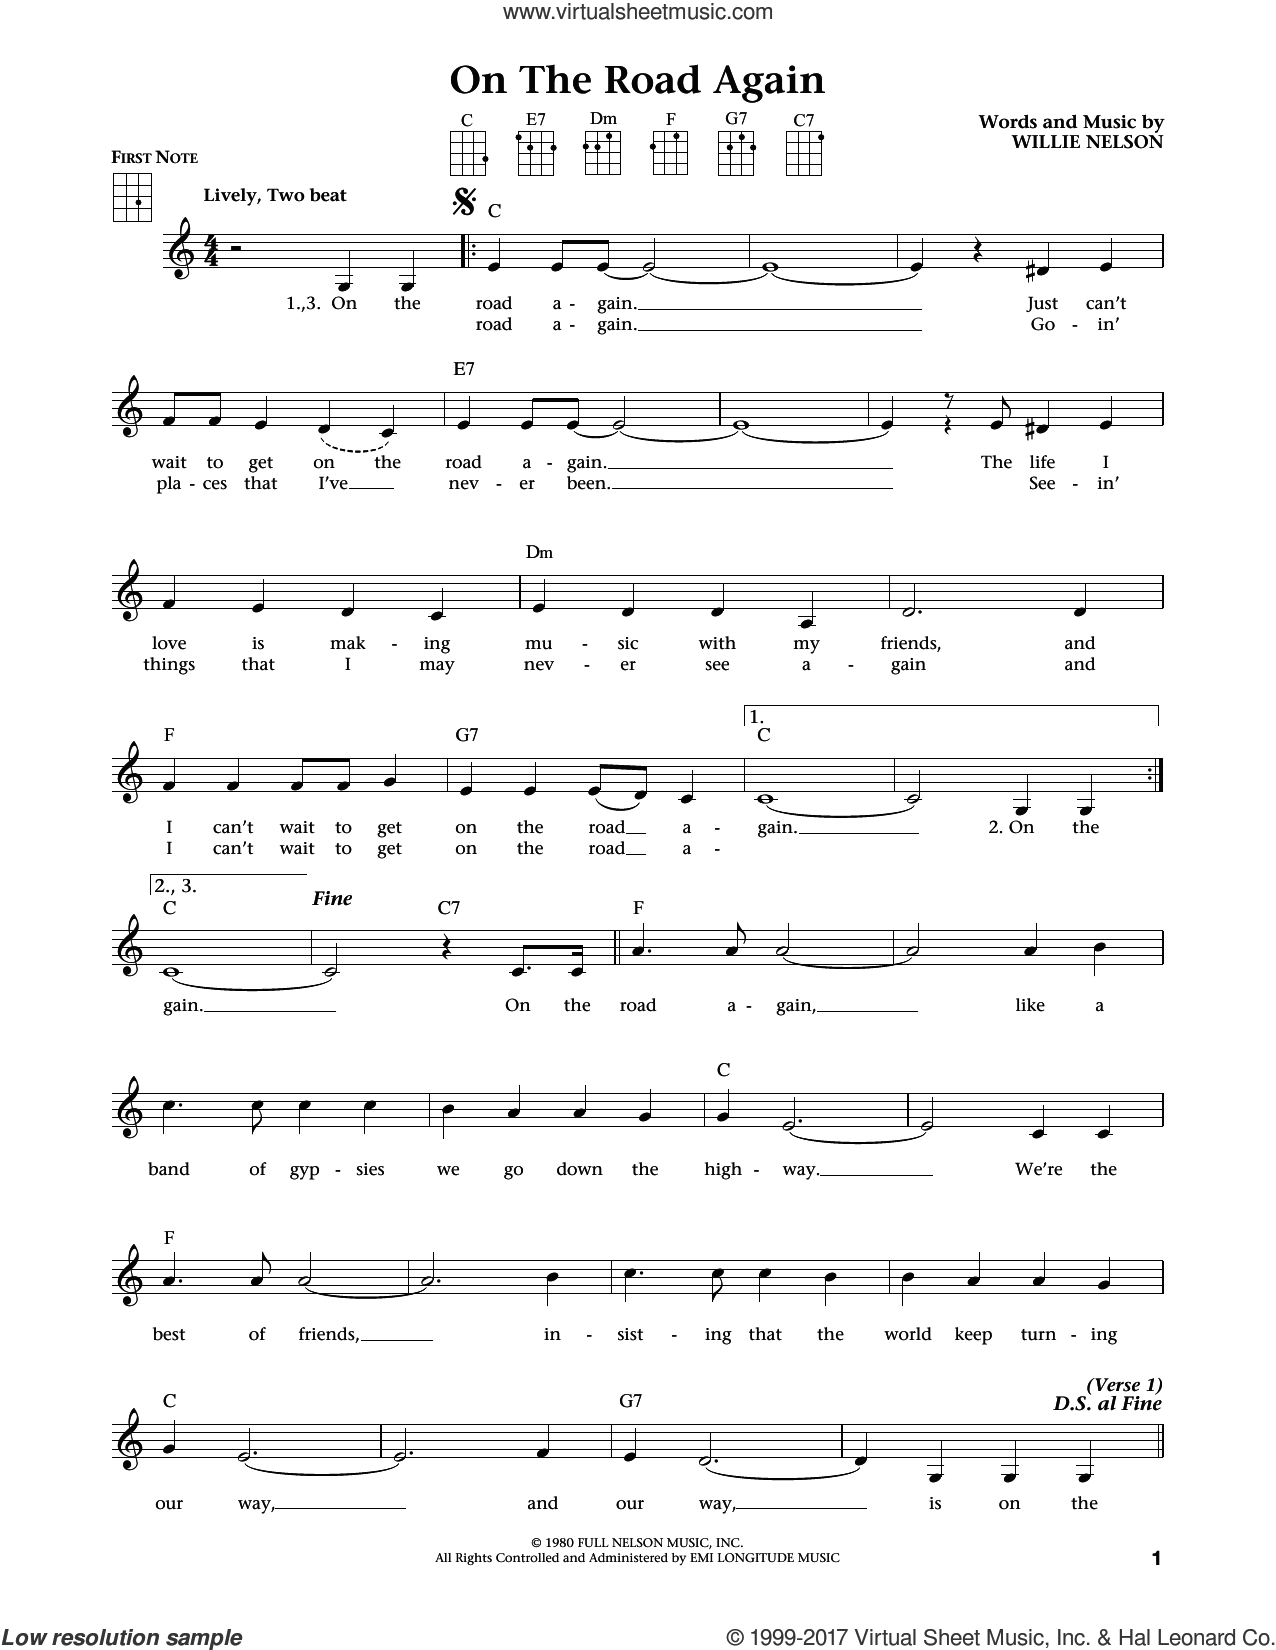 On The Road Again (from The Daily Ukulele) (arr. Liz and Jim Beloff) sheet music for ukulele by Willie Nelson, Jim Beloff and Liz Beloff, intermediate skill level